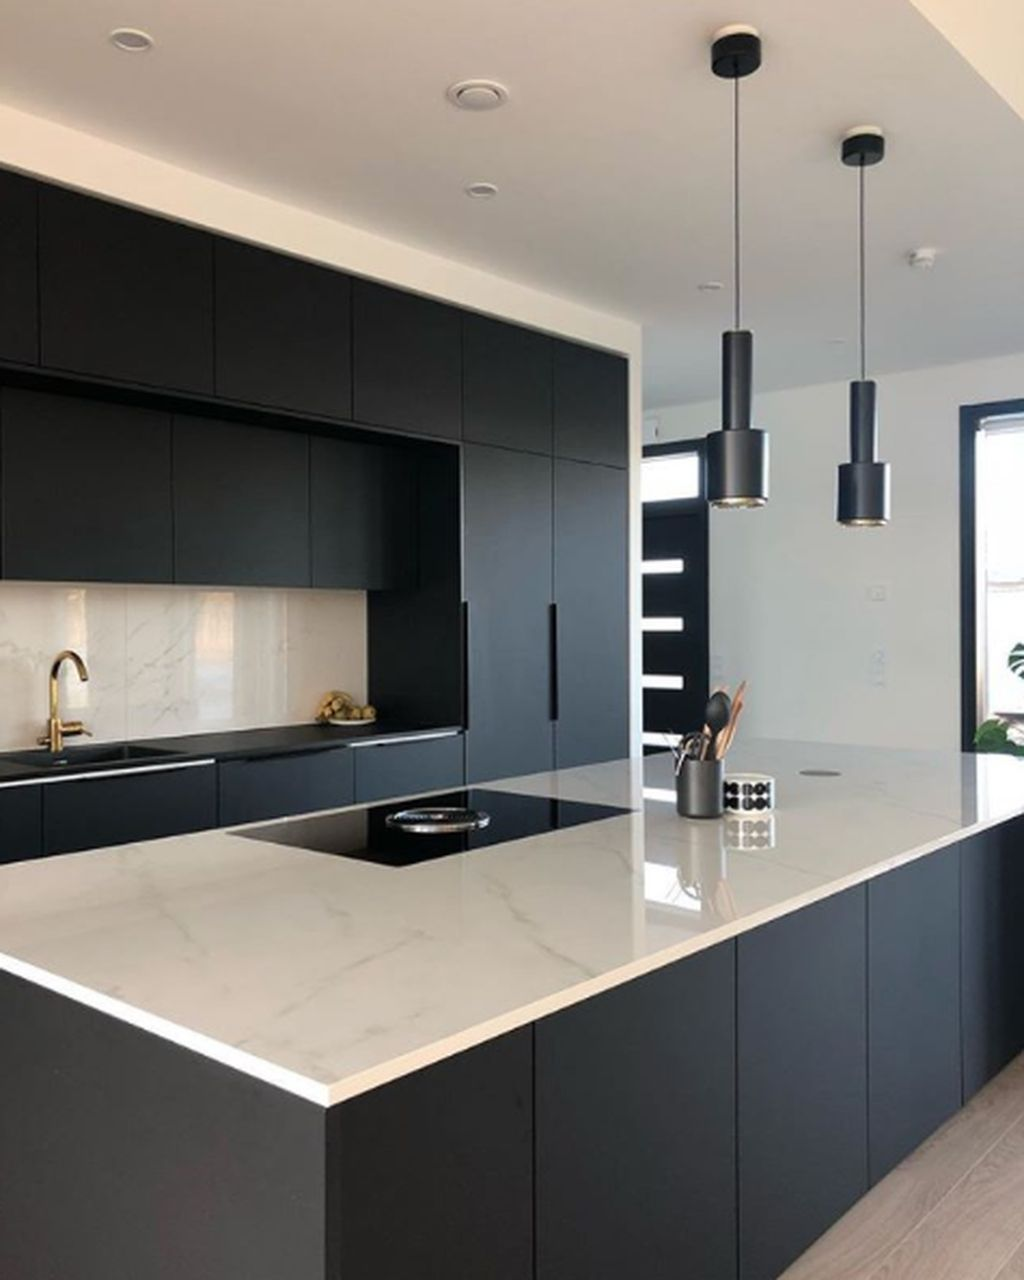 50 Black Kitchen Design Ideas With White Color Accent I 2020 Kjokkendesign Kjokken Moderne Moderne Kjokken